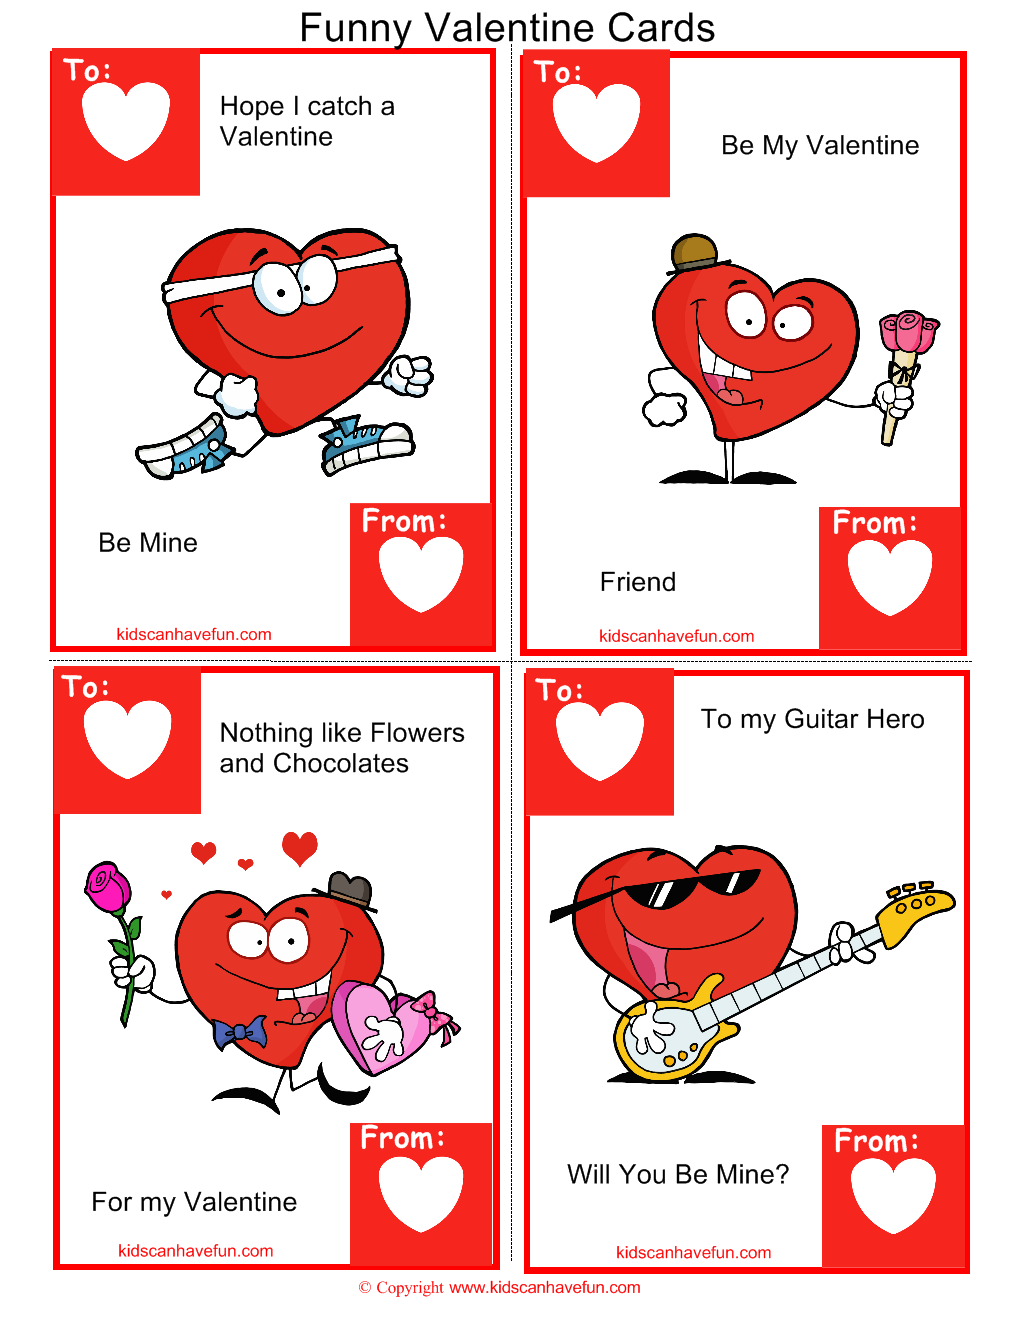 Funny Heart Valentine Cards Valentines Day Ideas Candy Grams